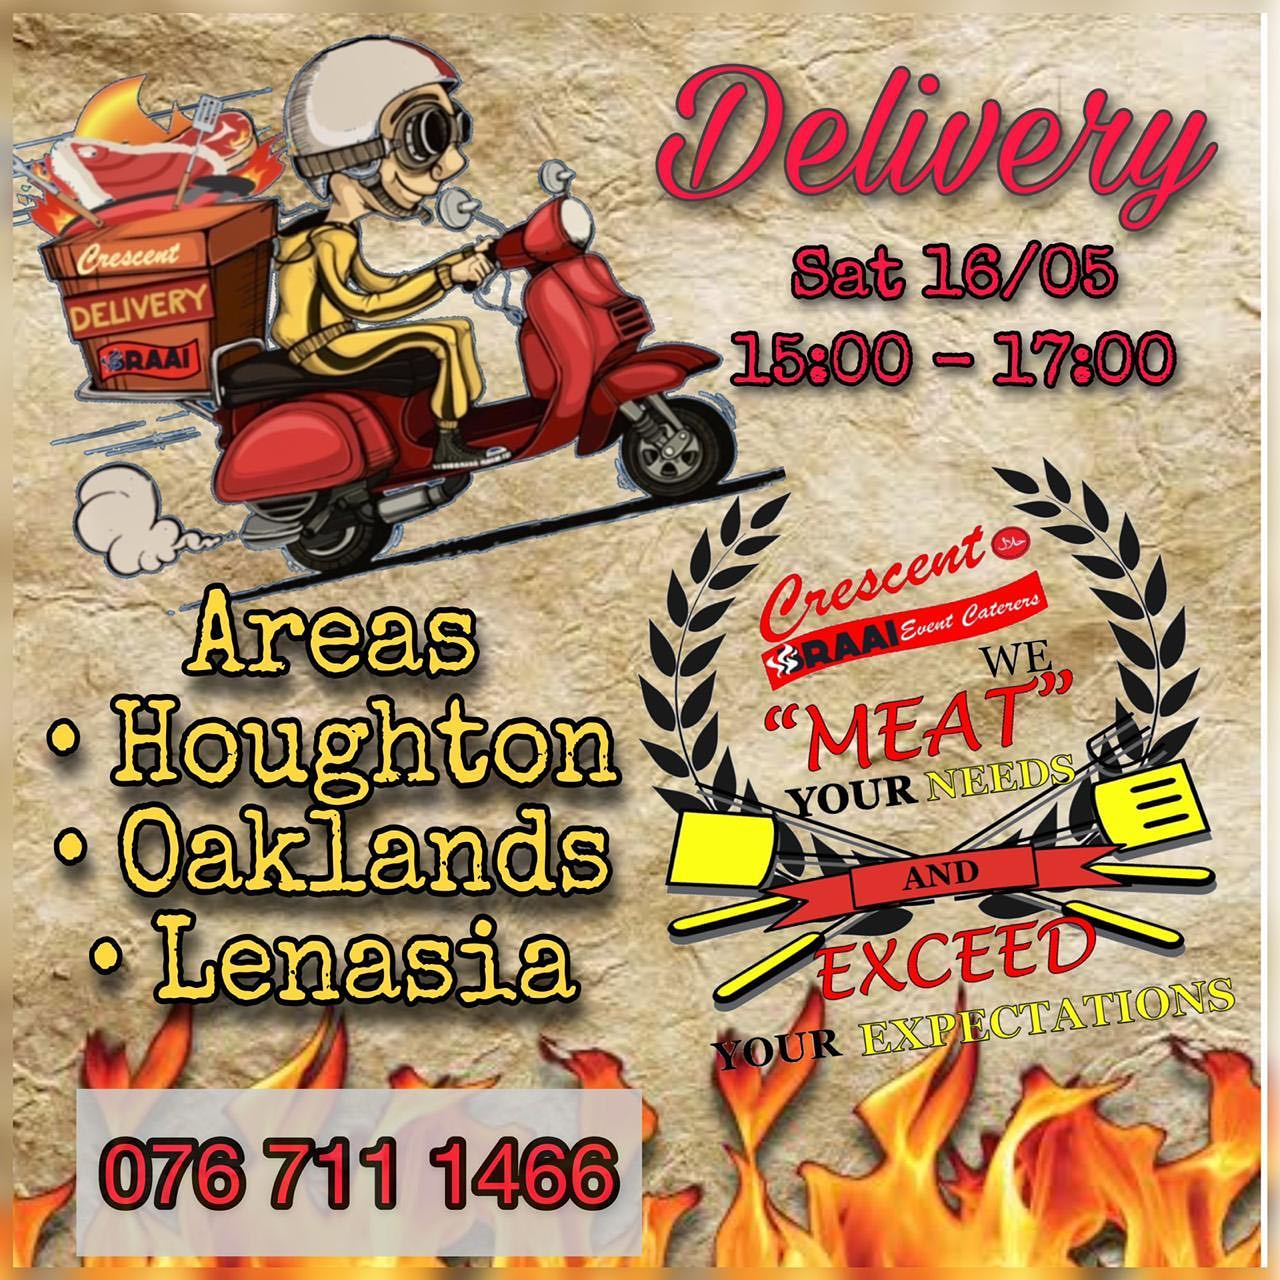 @crescent_braai will be doing deliveries to Houghton and surrounding areas aswell as Lenasia Sat 16/05 between 15:00 - 17:00. Orders taken on first come first serve basis.